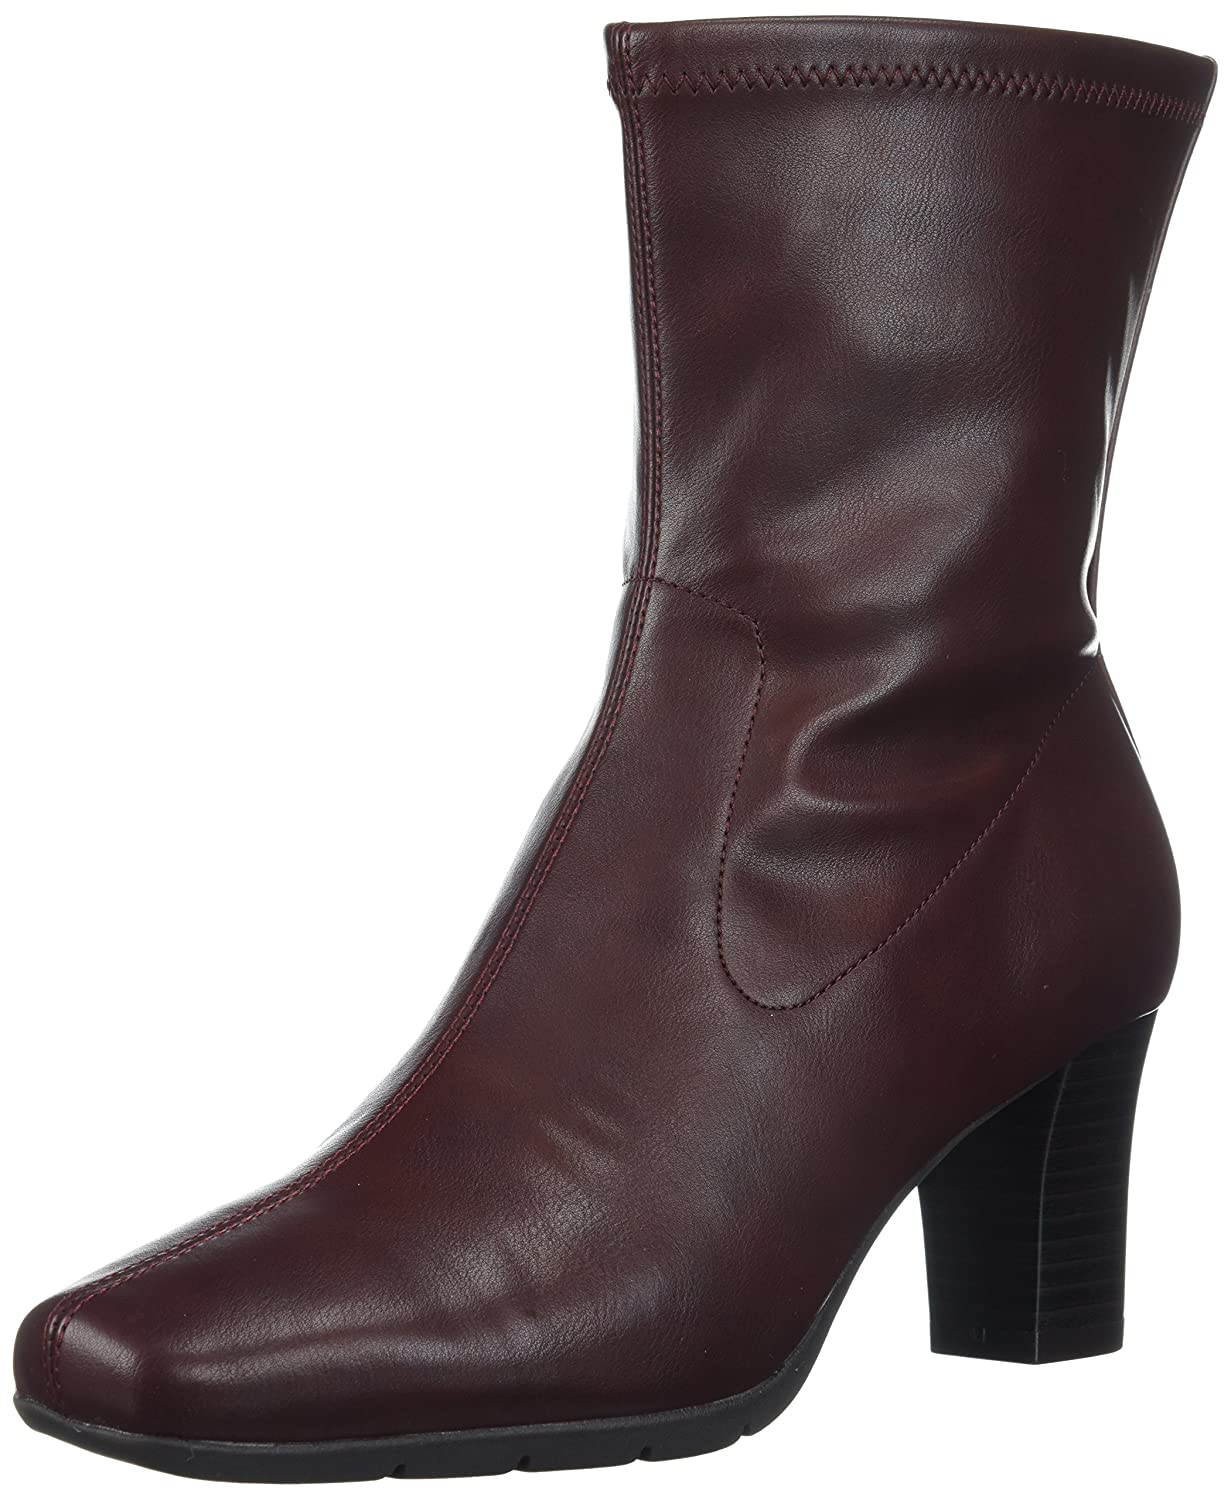 Aerosoles Women's Geneva 2 Mid Calf Boot B074H1F4K8 9.5 W US|Wine